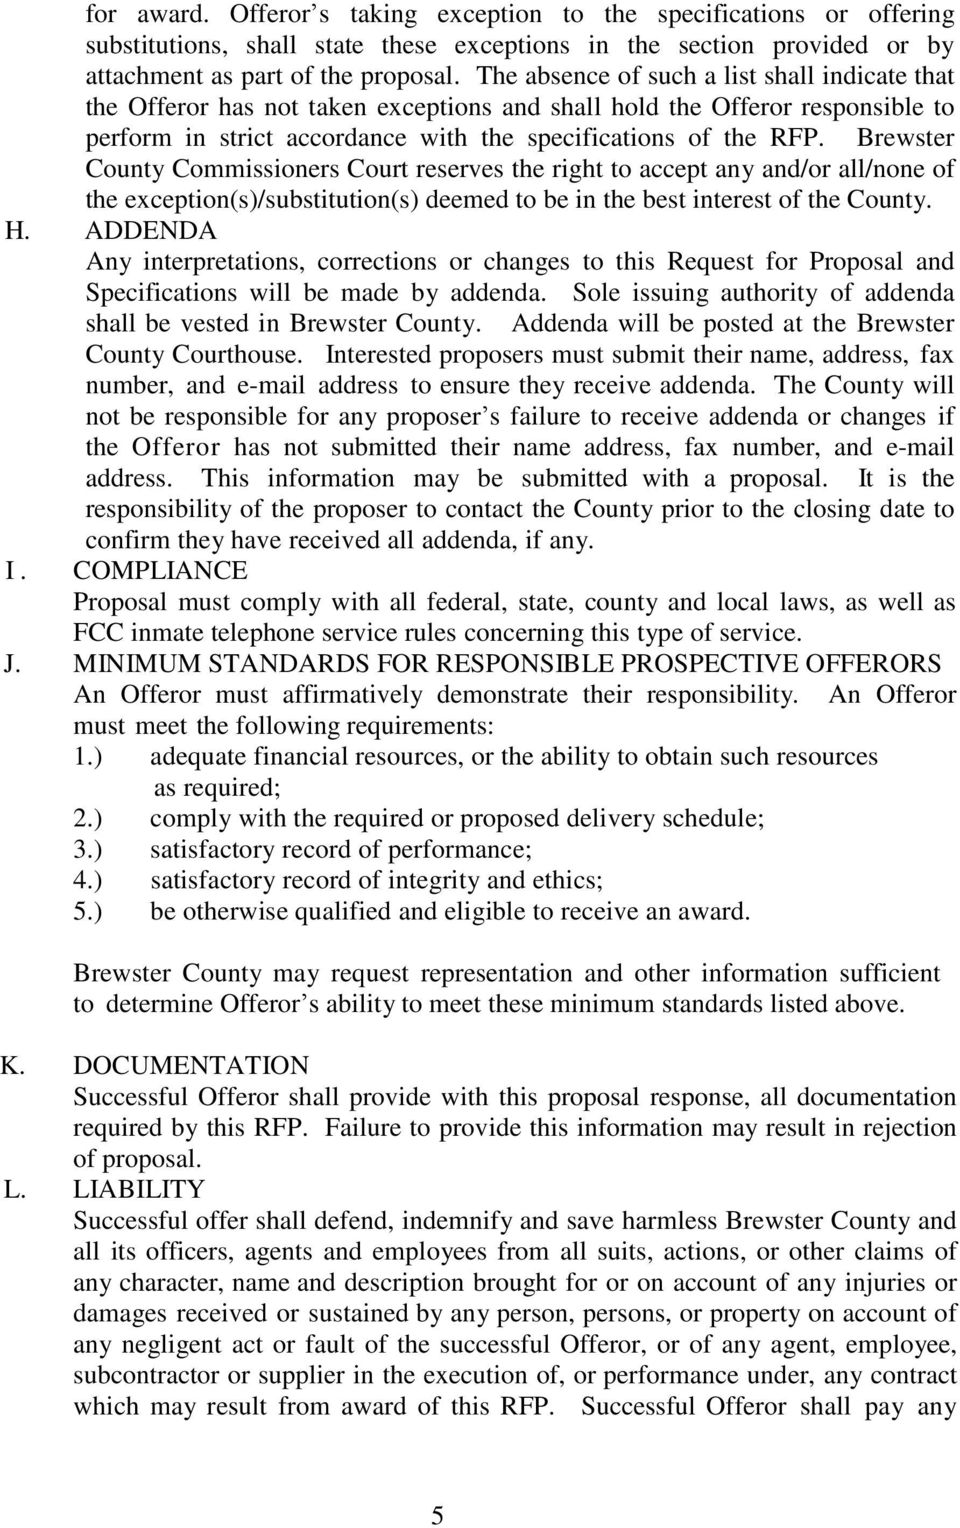 Brewster County Commissioners Court reserves the right to accept any and/or all/none of the exception(s)/substitution(s) deemed to be in the best interest of the County. H.